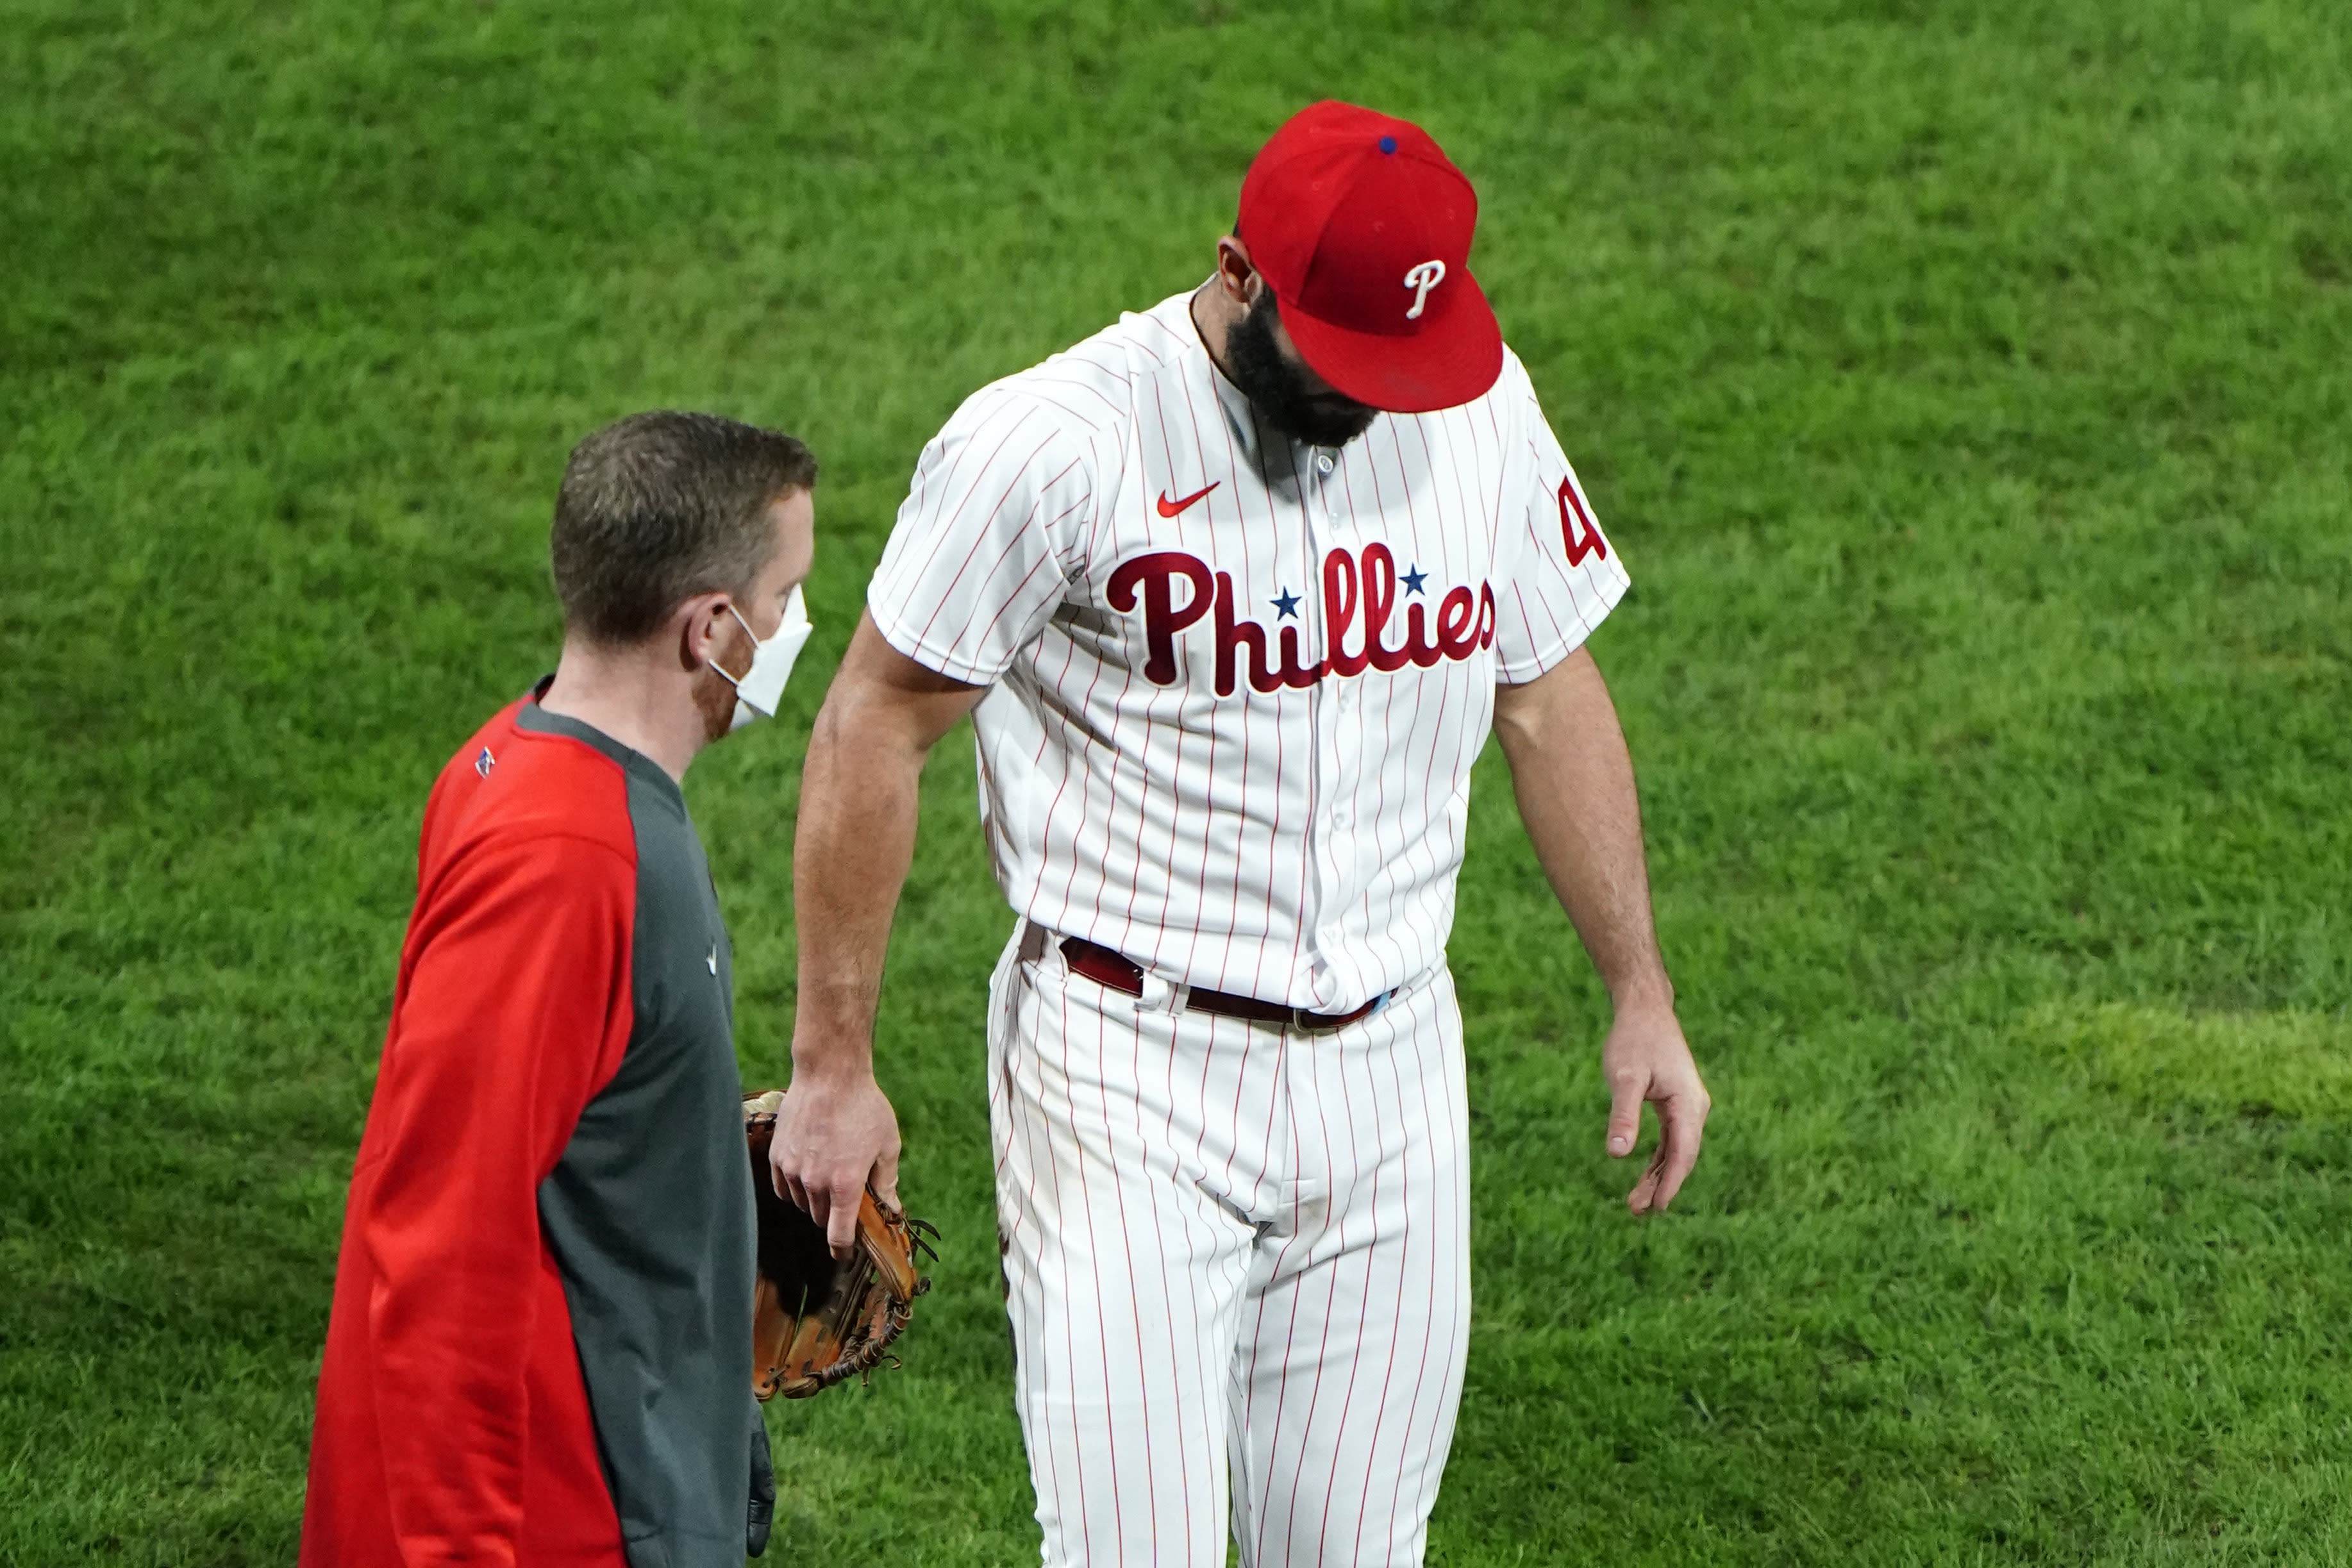 Philadelphia Phillies pitcher Jake Arrieta, right, walks to the dugout after an injury during the sixth inning of a baseball game against the New York Mets, Tuesday, Sept. 15, 2020, in Philadelphia. (AP Photo/Matt Slocum)